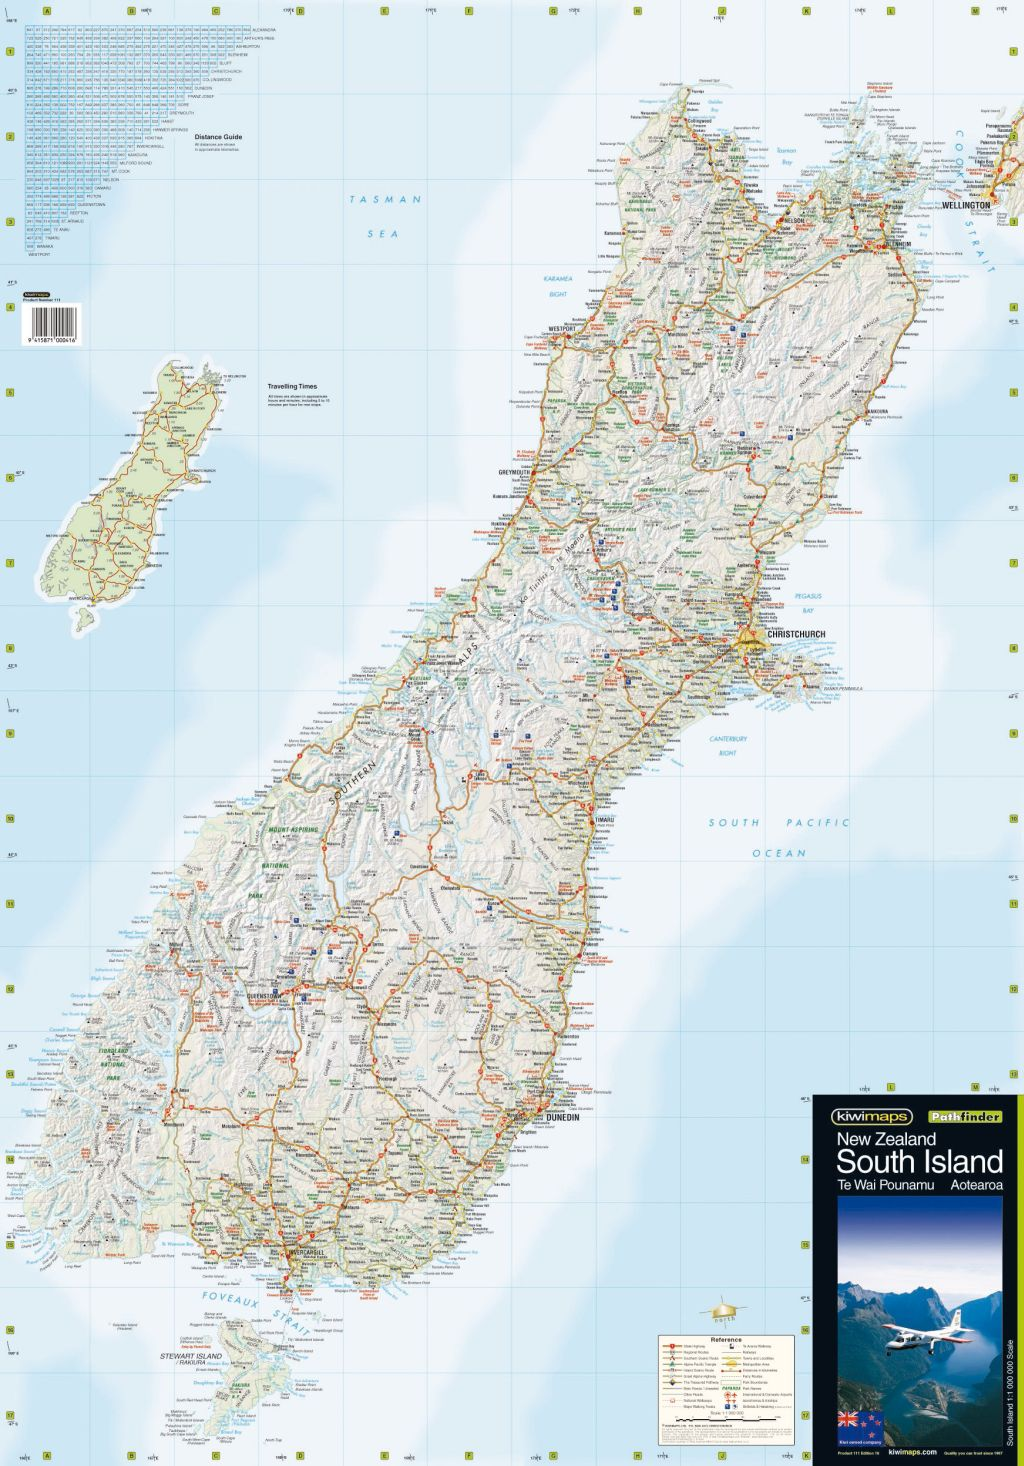 South Island Map Of New Zealand.South Island Kiwi Map